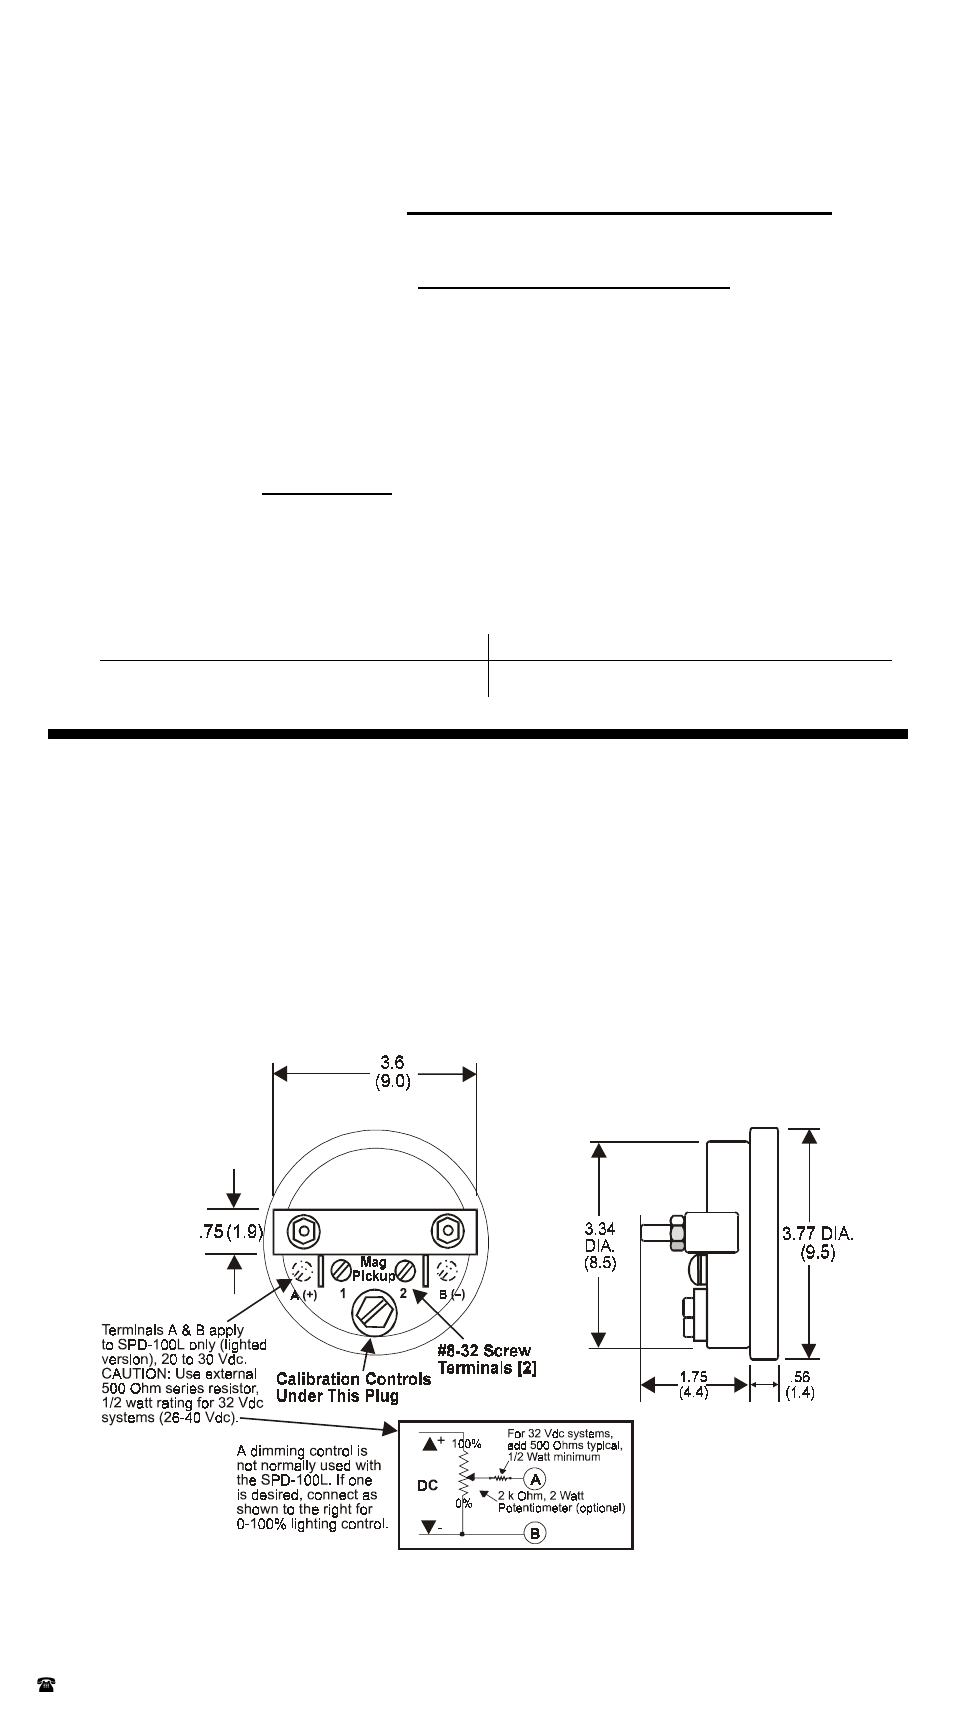 Hz To Rpm >> Outline And Connection Drawing Calculating Signal Frequency In Hz